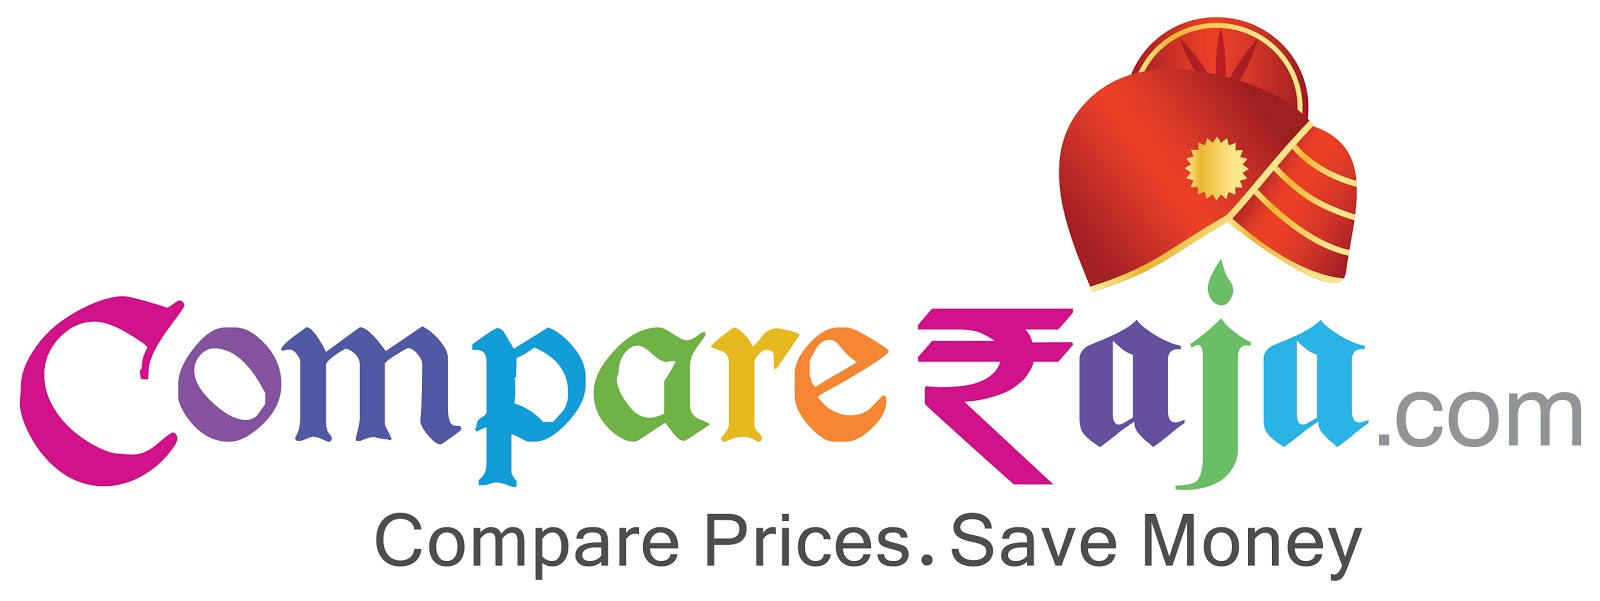 Best Online Shopping Price Comparison Websites In India ...